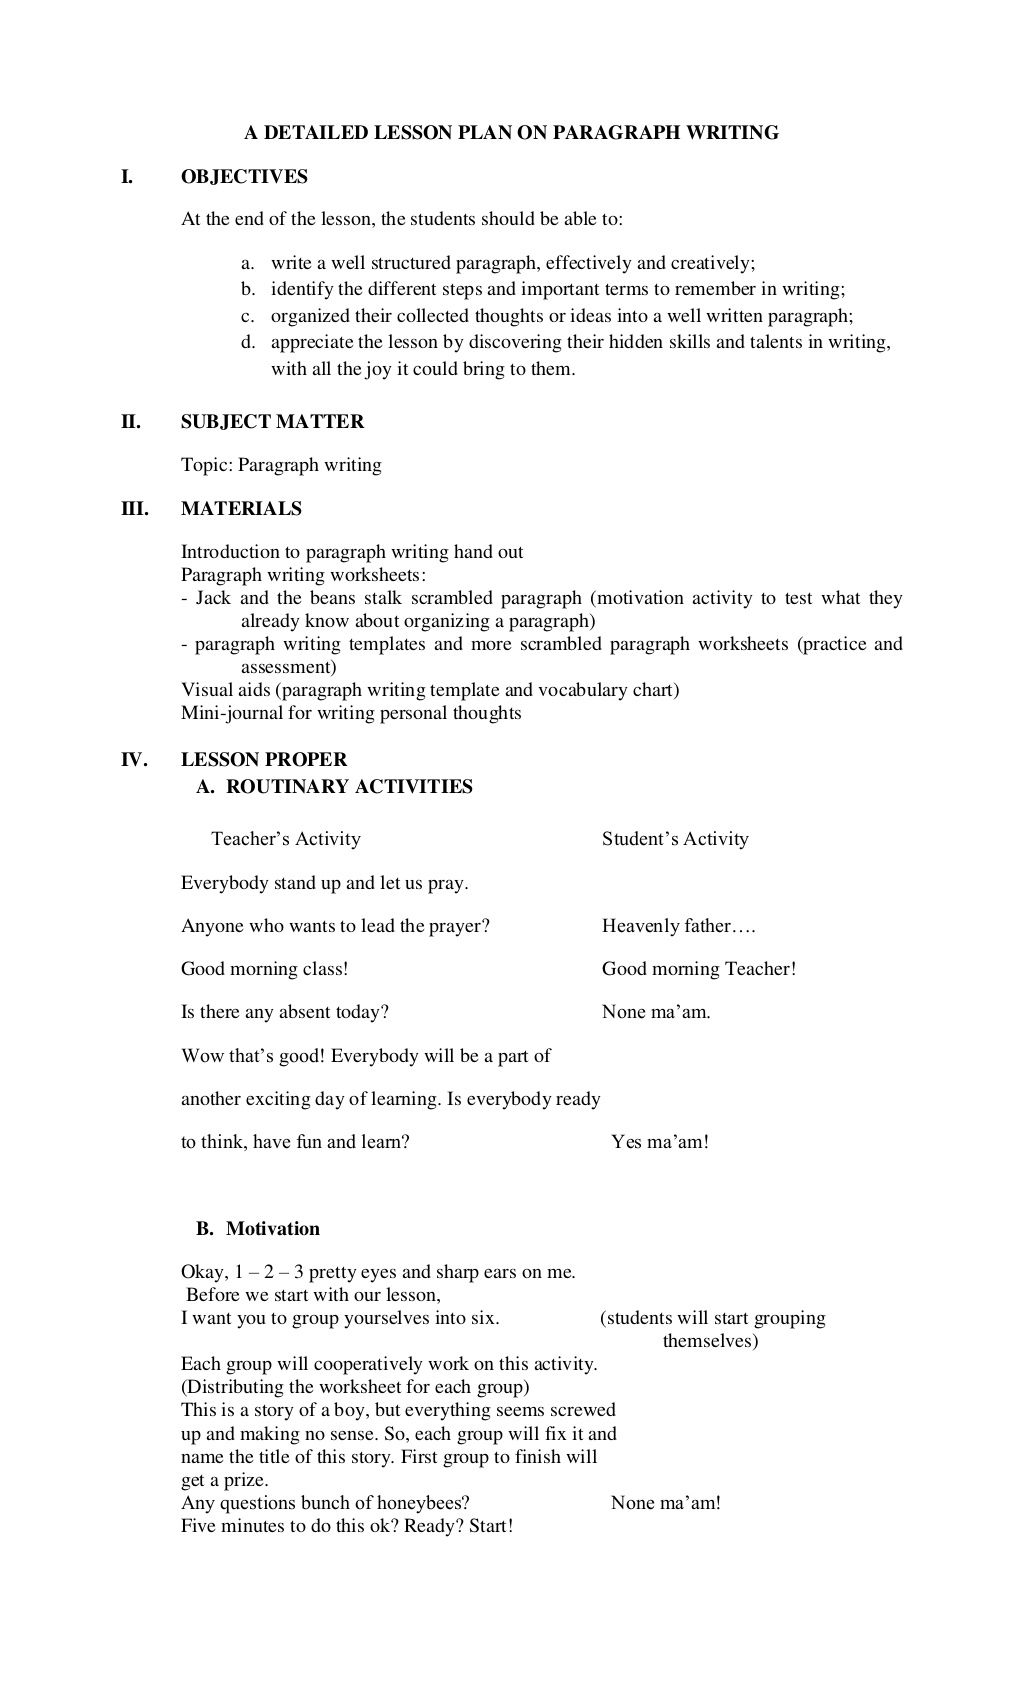 a detailed lesson plan on paragraph writing by christine watts via  college essay lesson plans a detailed lesson plan on paragraph writing